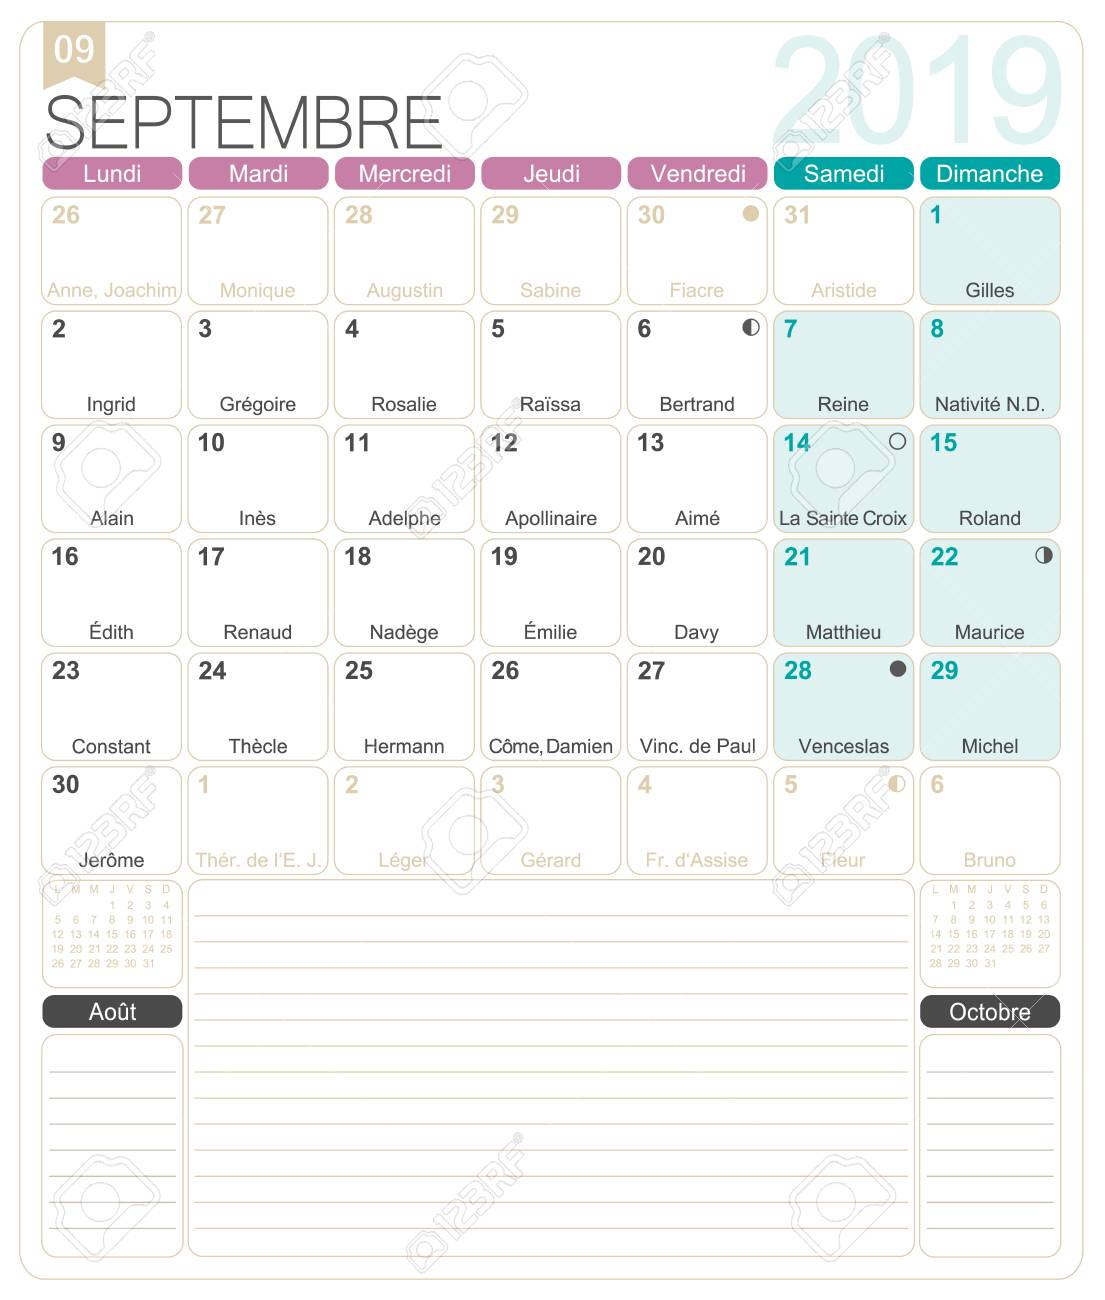 graphic regarding Printable September Calendar named French calendar 2019 / September 2019, French printable regular monthly..